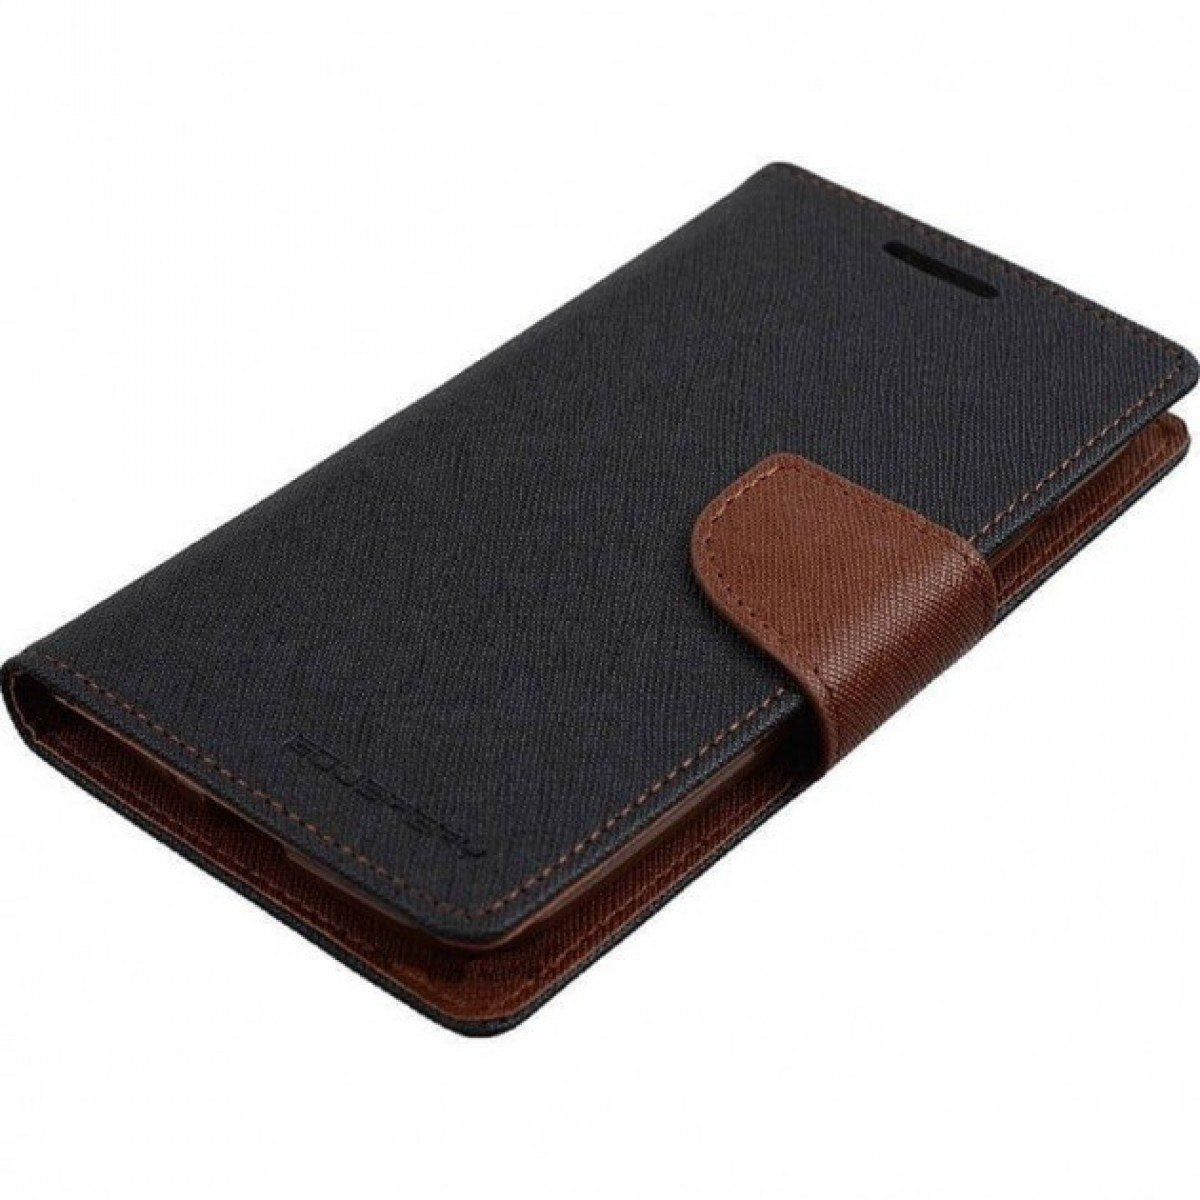 low priced e6877 8fe4f HTC Desire 816 Flip Cover by GVC - Black - Flip Covers Online at Low ...